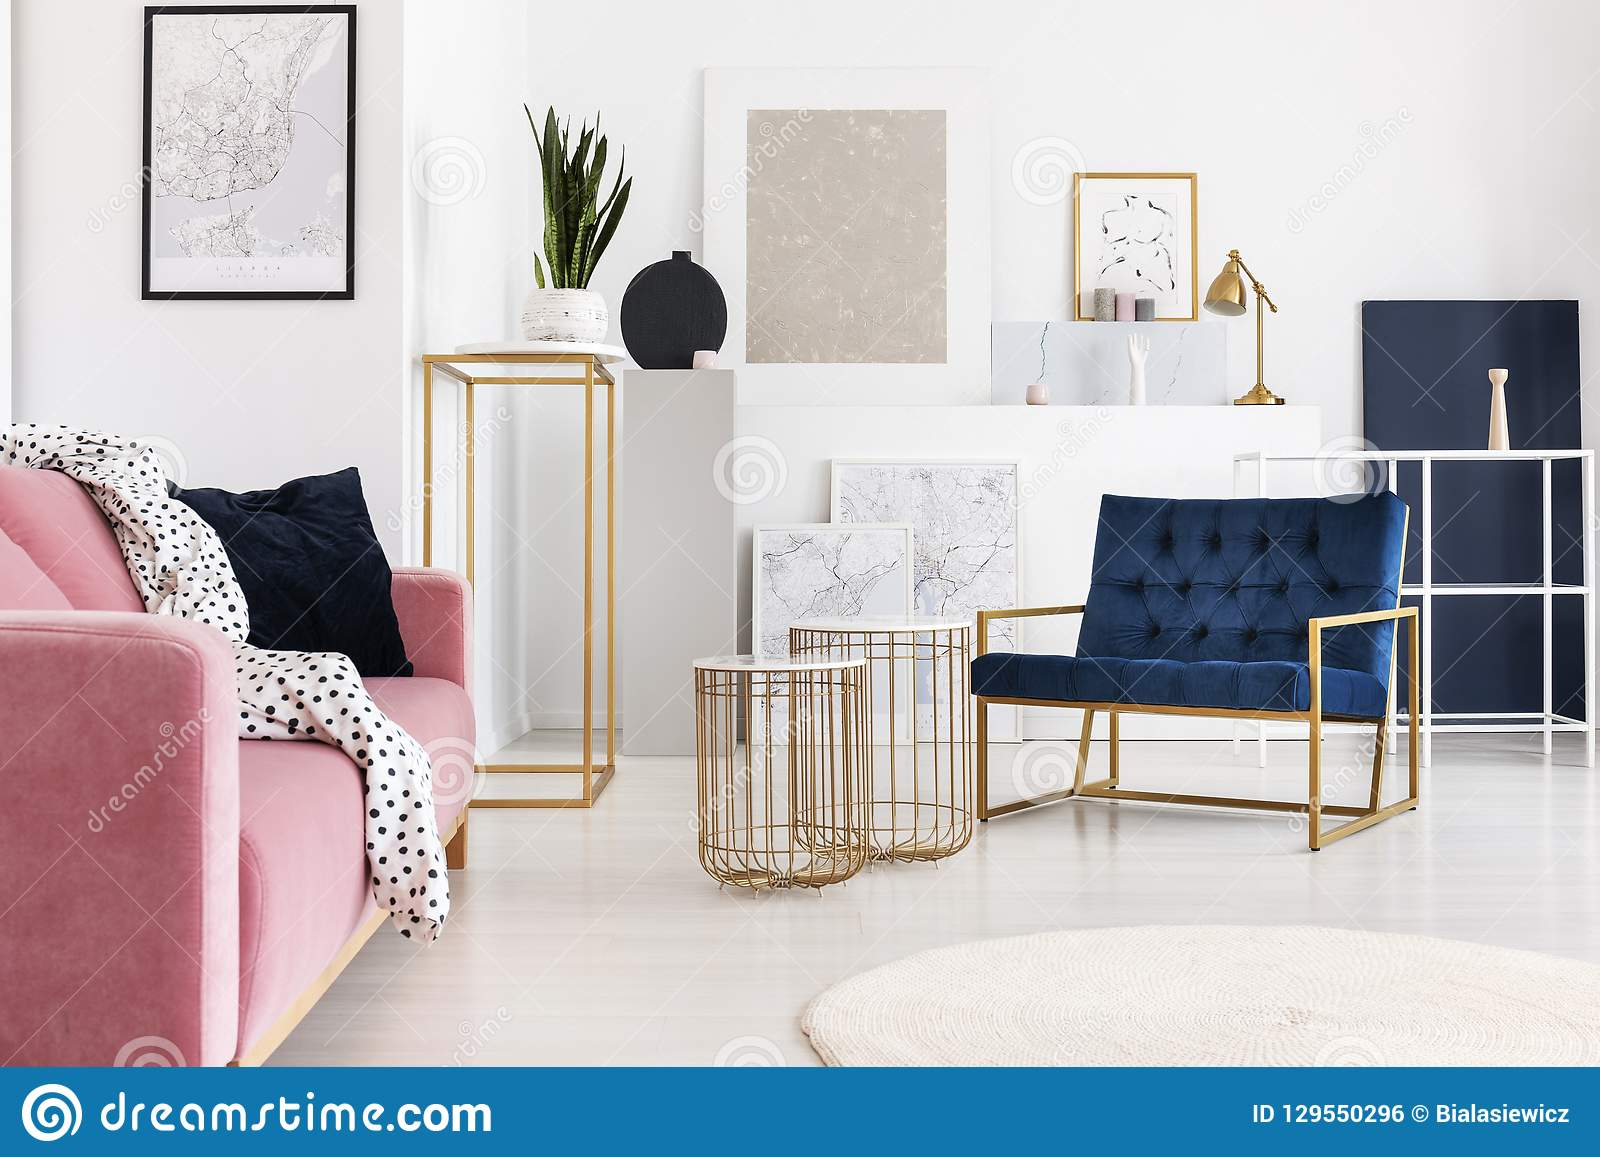 Silver painting on the wall of trendy living room with two elegant coffee tables, petrol blue armchair and powder pink